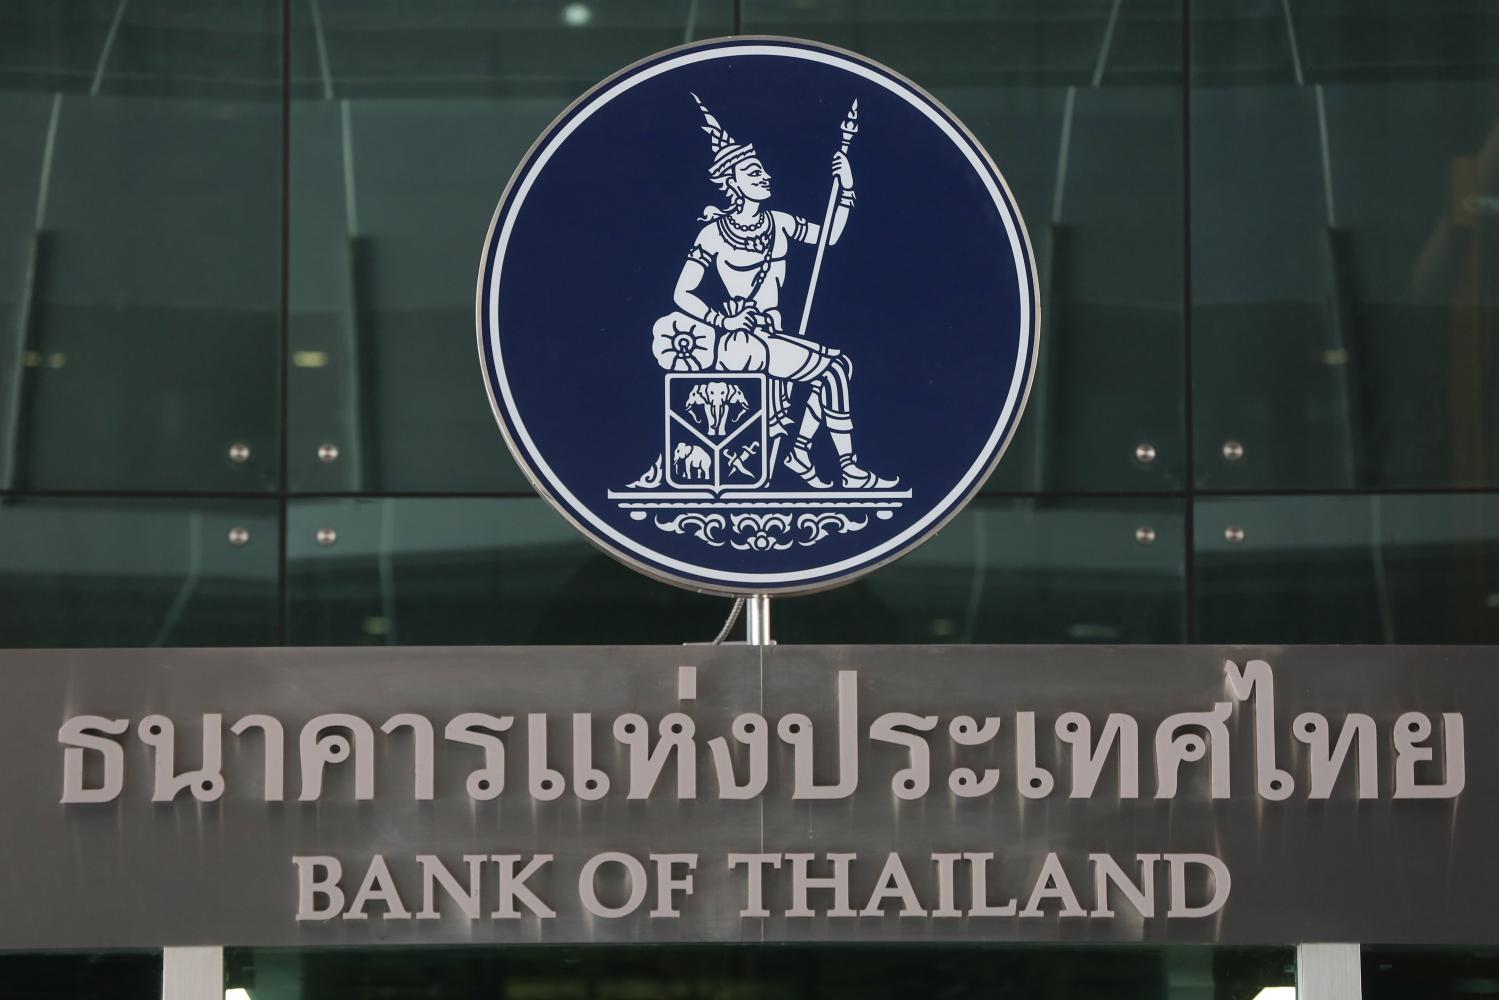 The Bank of Thailand is in the process of developing a Retail Central Bank Digital Currency.